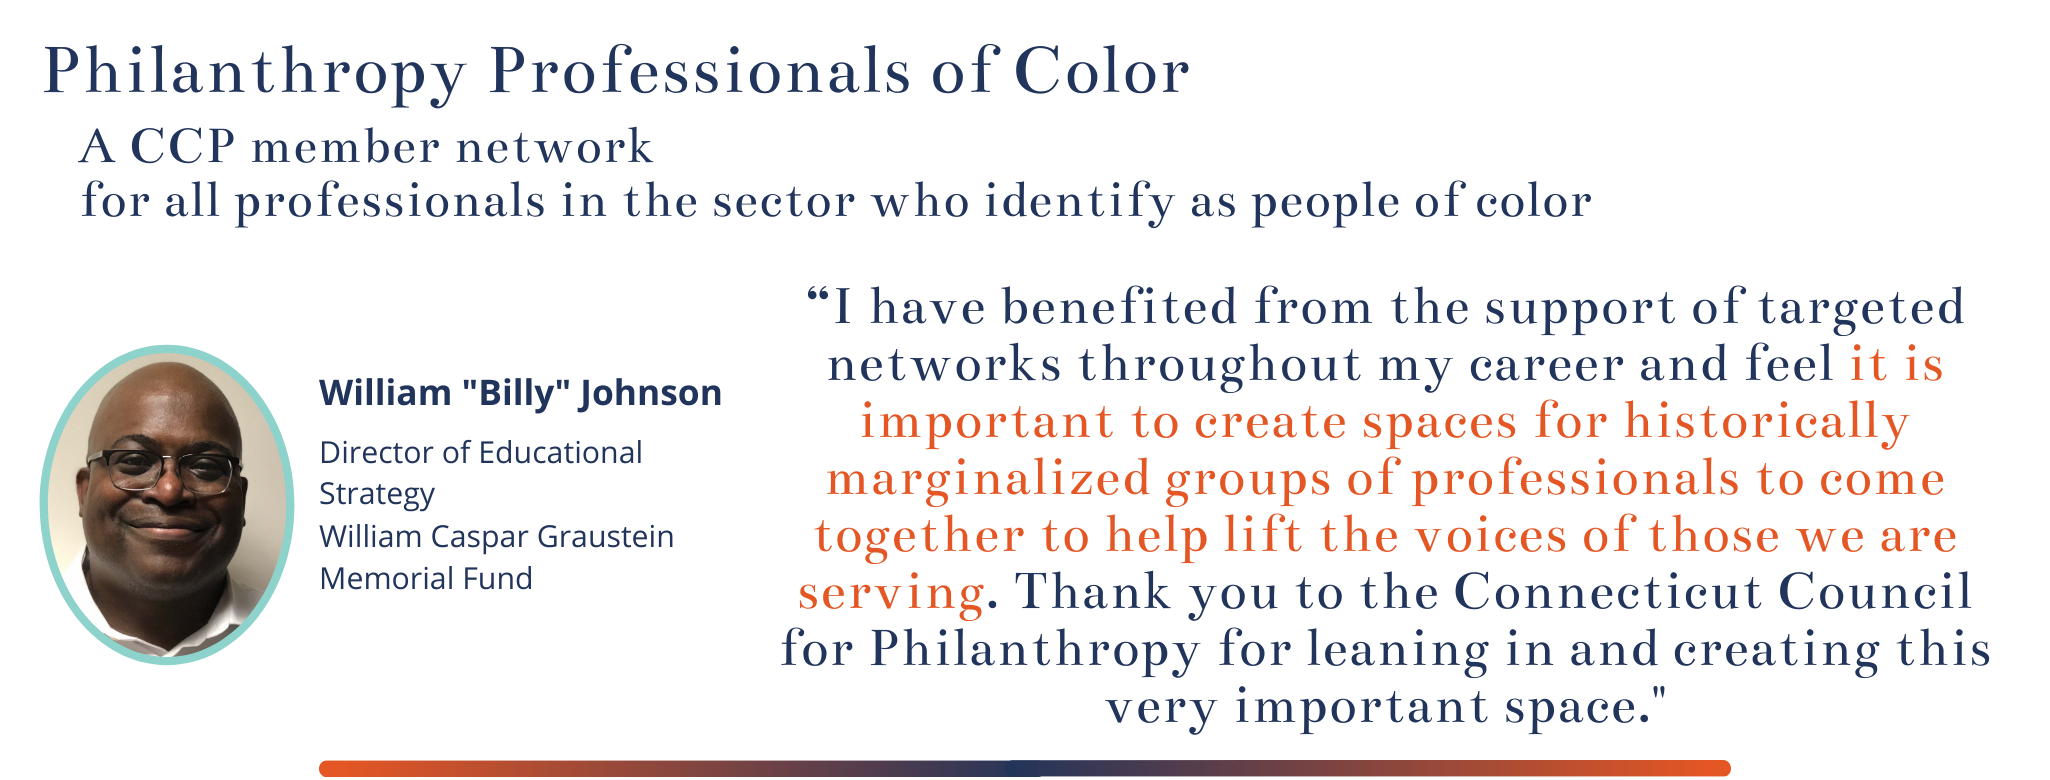 "Quote from Billy Johnson: ""it is important to create spaces for historically marginalized groups of professionals to come together to help lift the voices of those we are serving."""